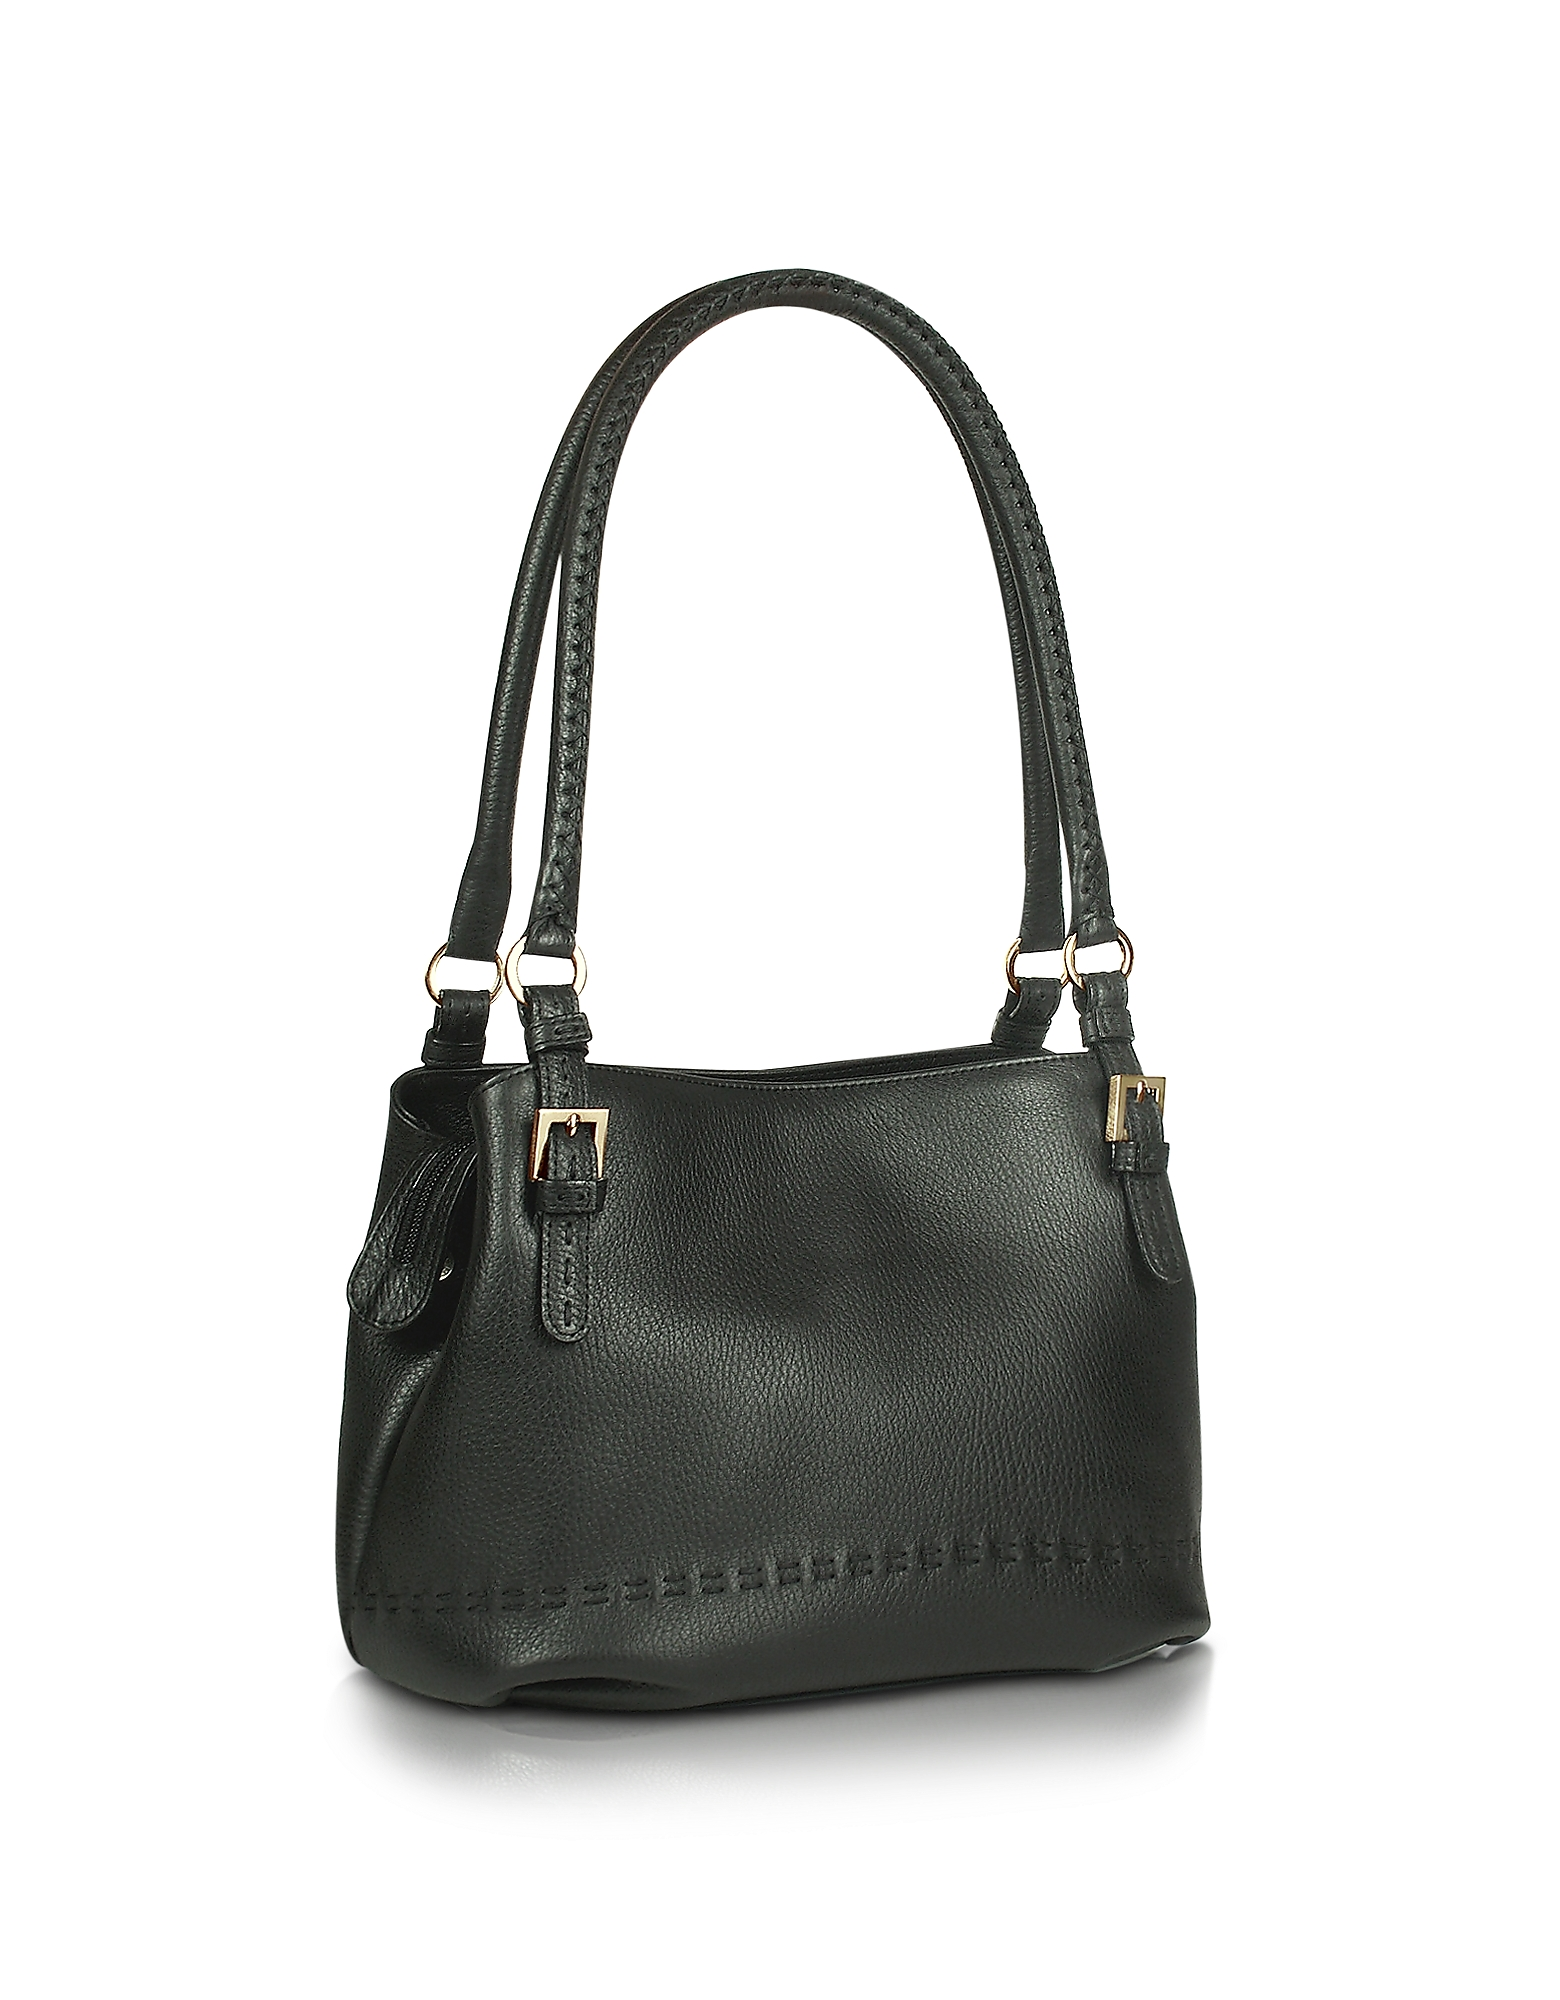 Fontanelli Handbags, Black stiched Soft Leather Handbag